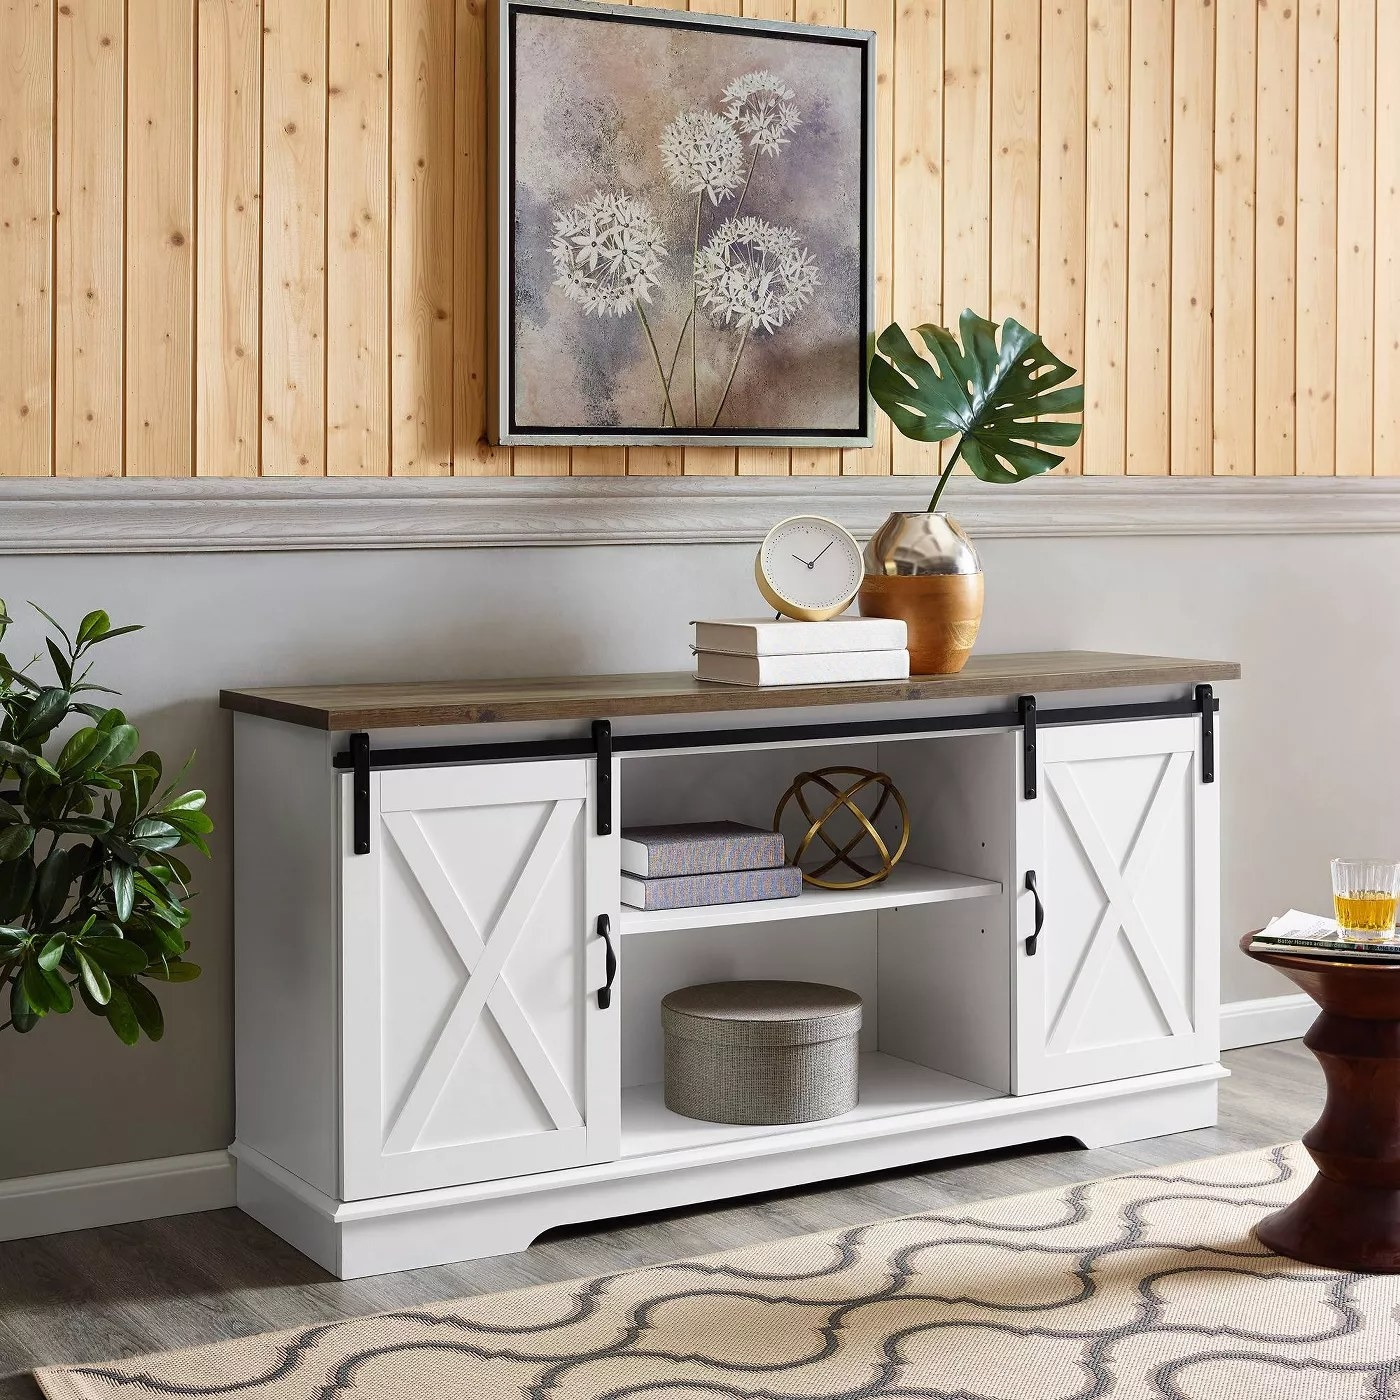 The farmhouse TV stand with barn doors in white